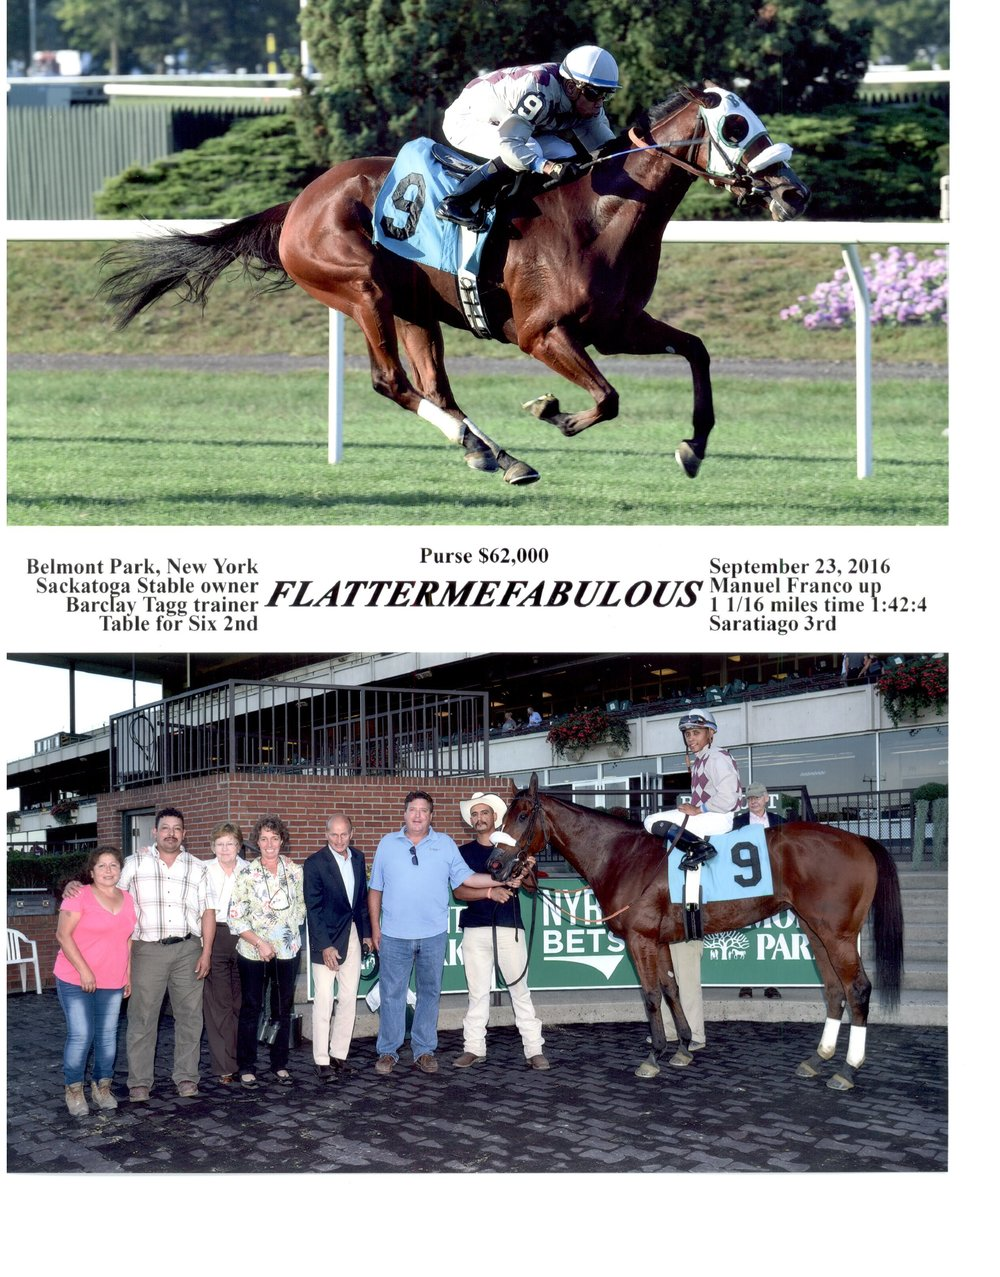 9-23-2016 - Flattermefabulous Winning Photo - Belmont Park.jpg